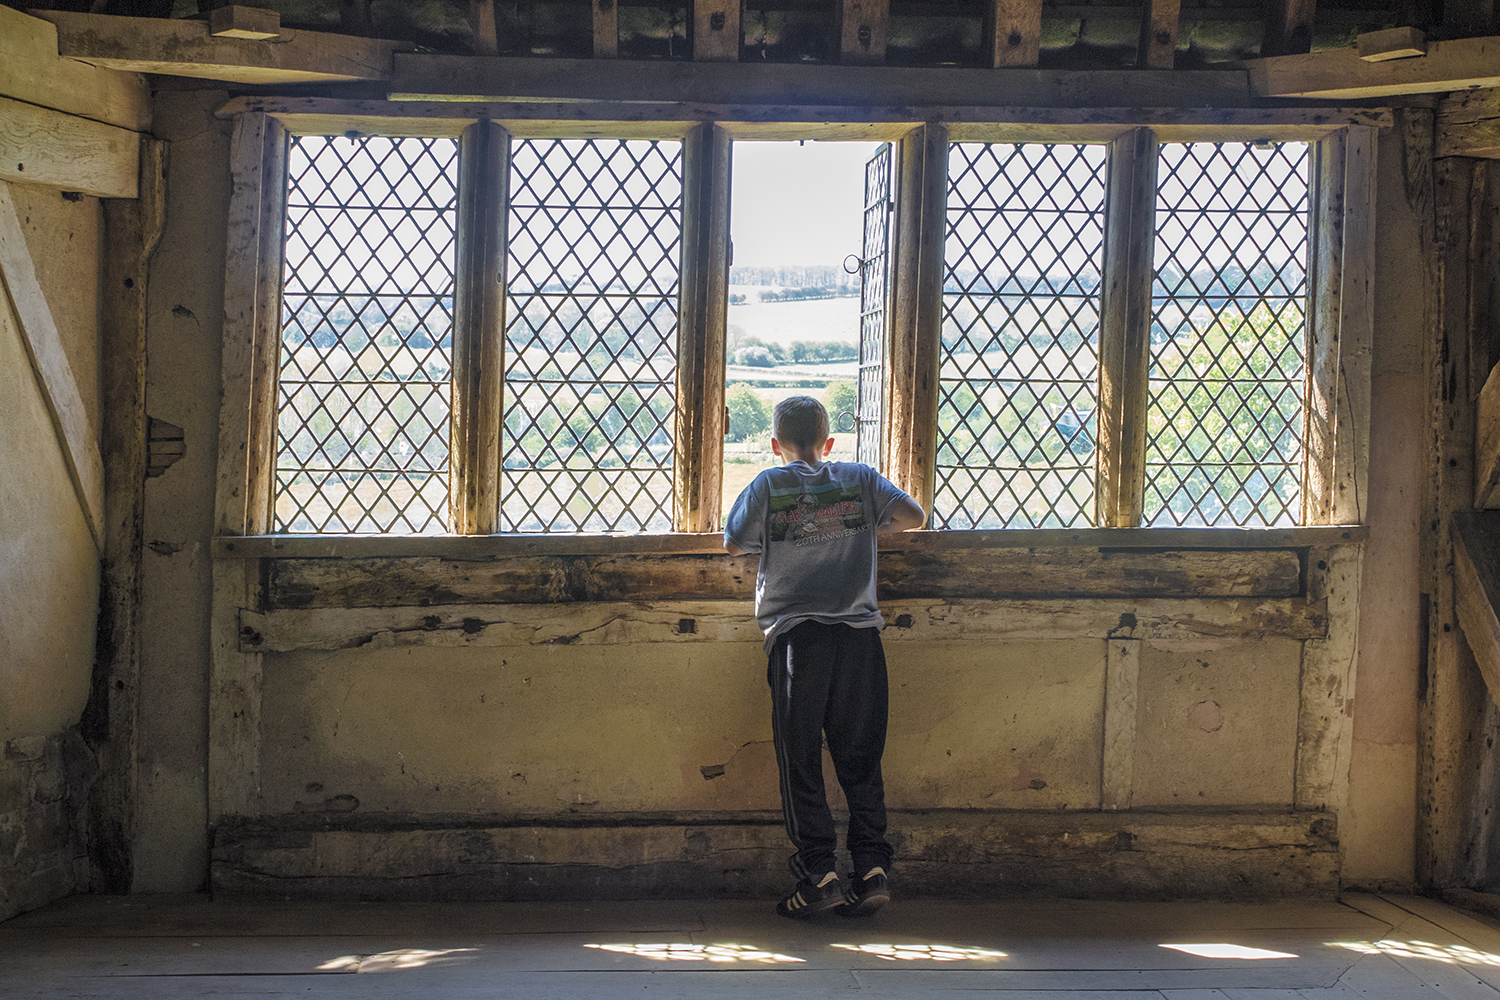 Matthew looking out of the window at Stokesay Castle May 6 2018.jpg